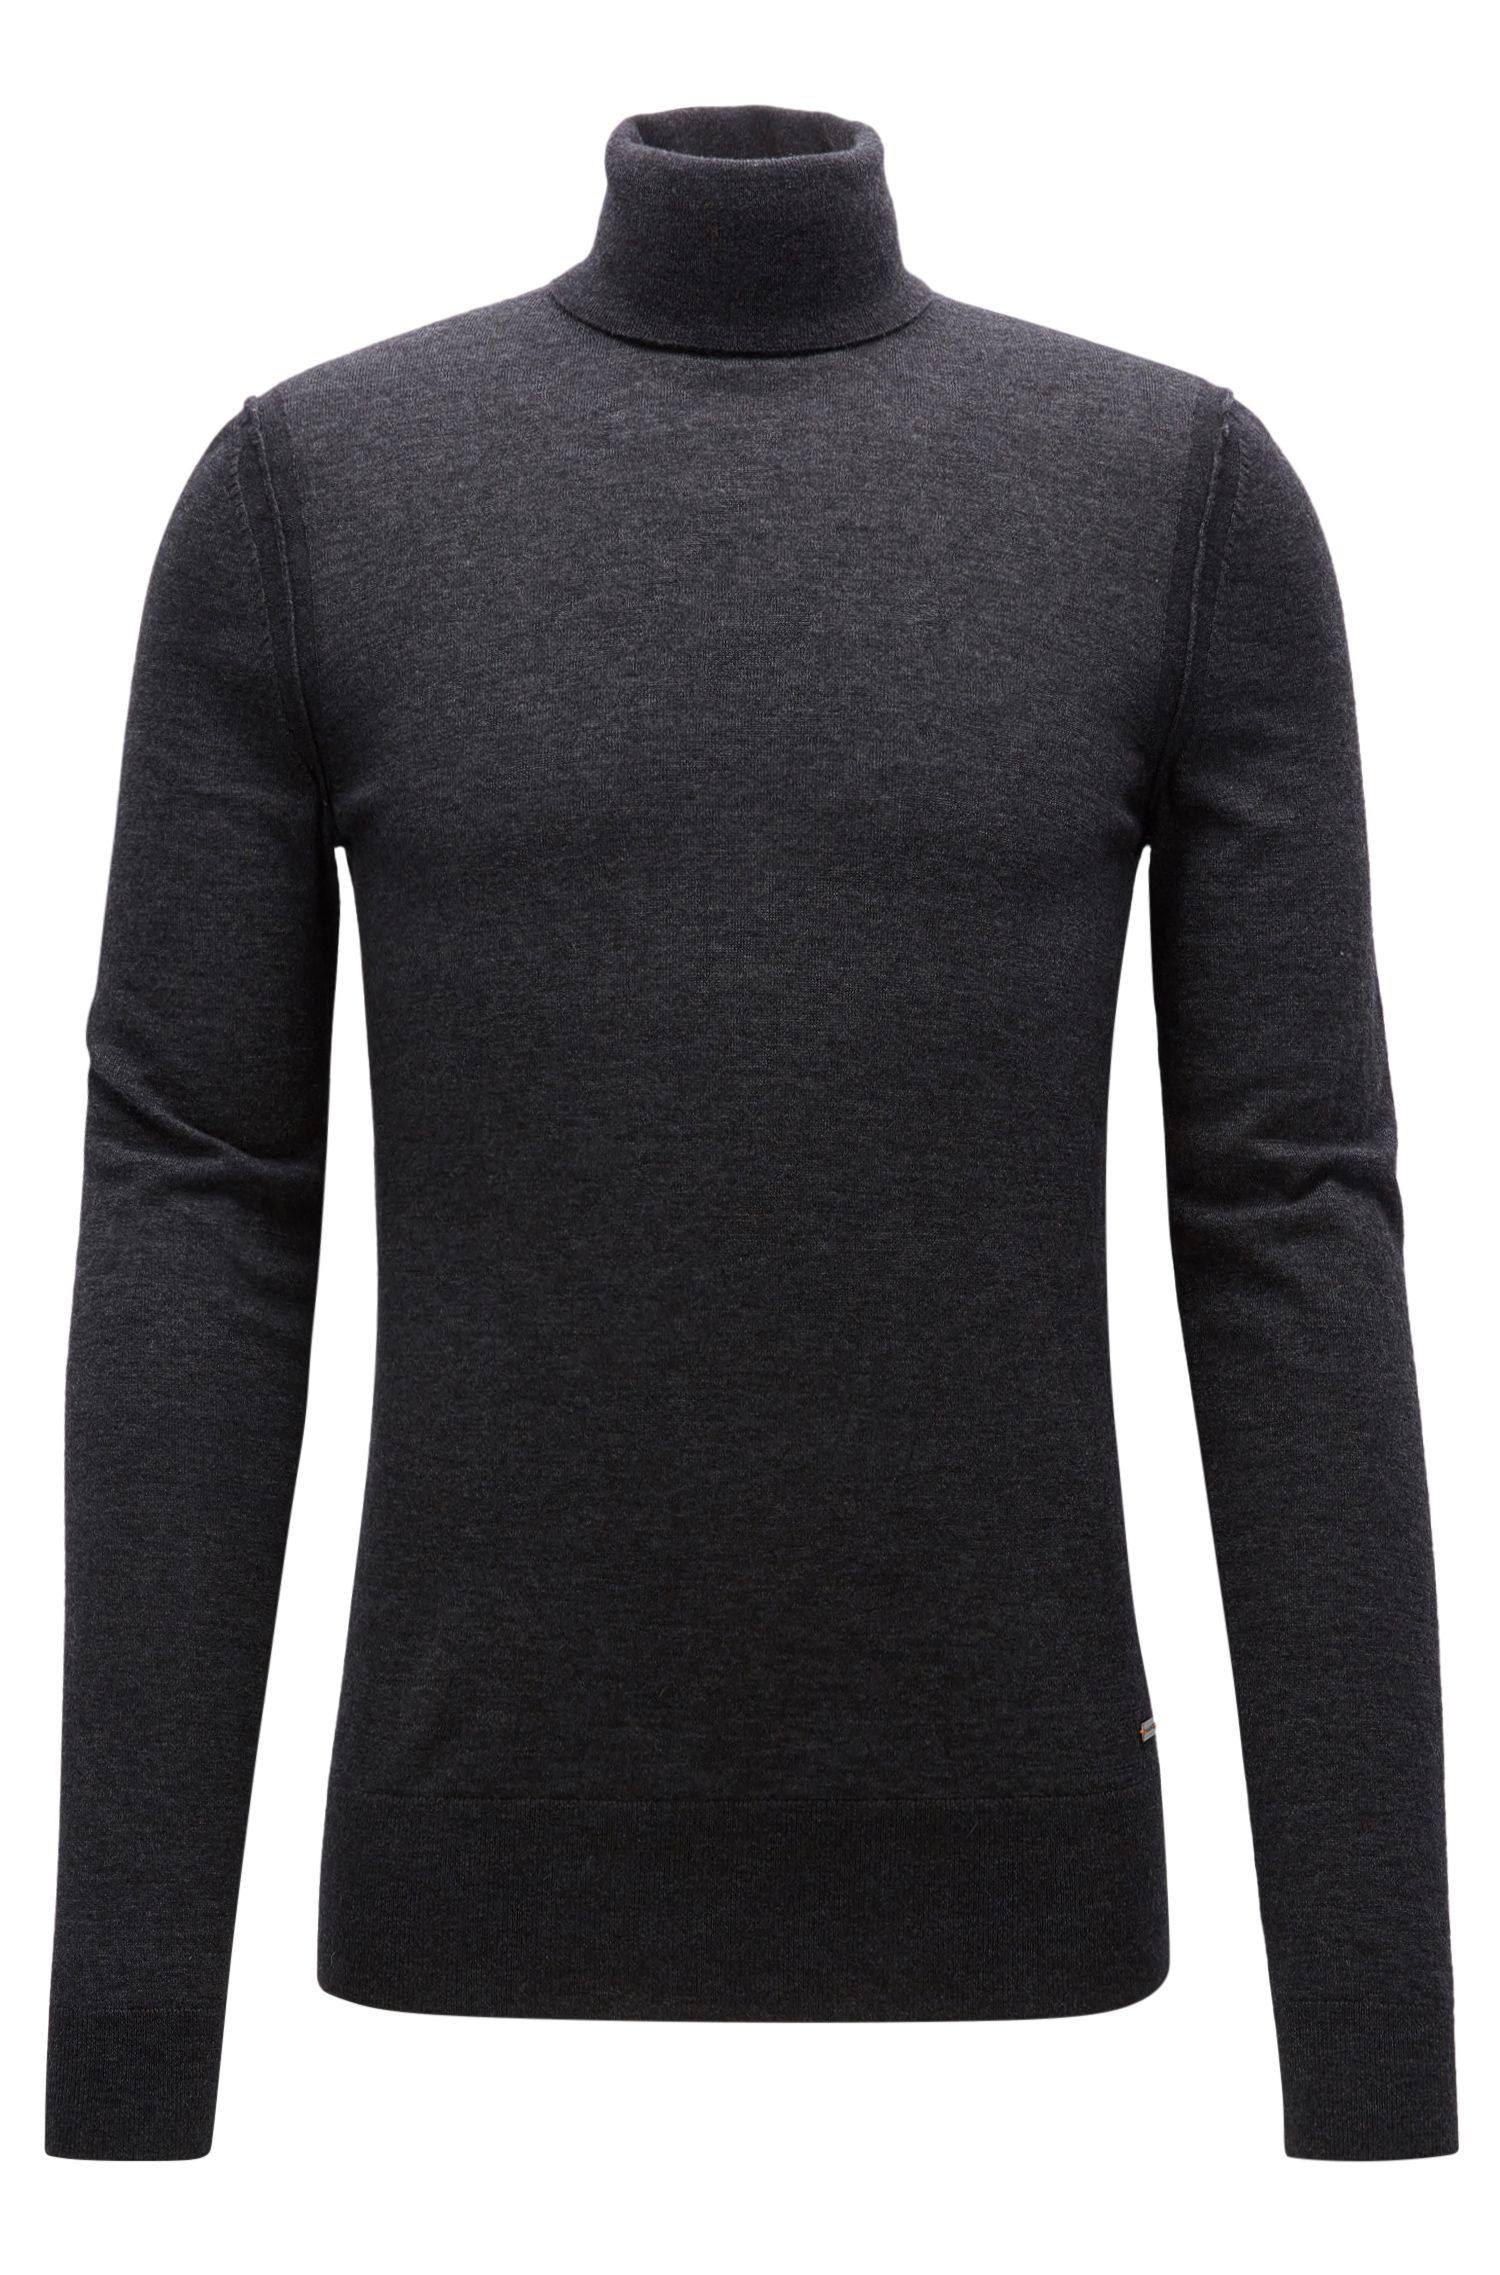 Turtle-neck sweater in knitted fabric